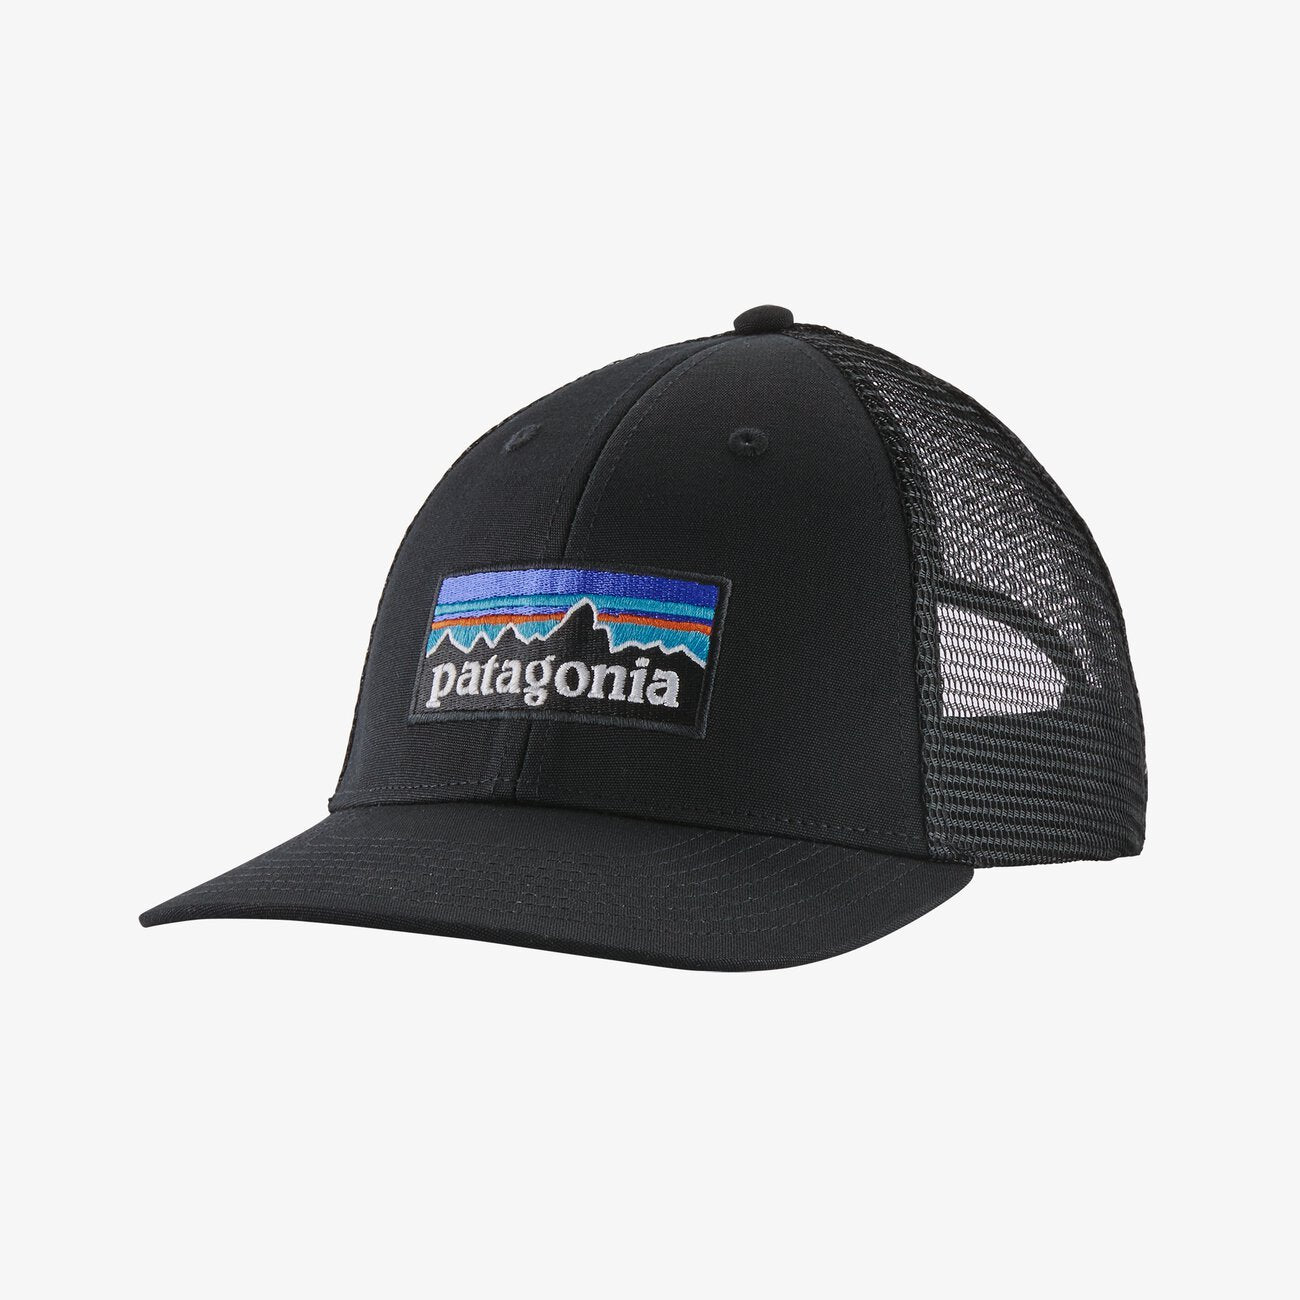 PATAGONIA Men's Hats BLACK Patagonia P-6 Logo LoPro Trucker Hat || David's Clothing 38283BLK